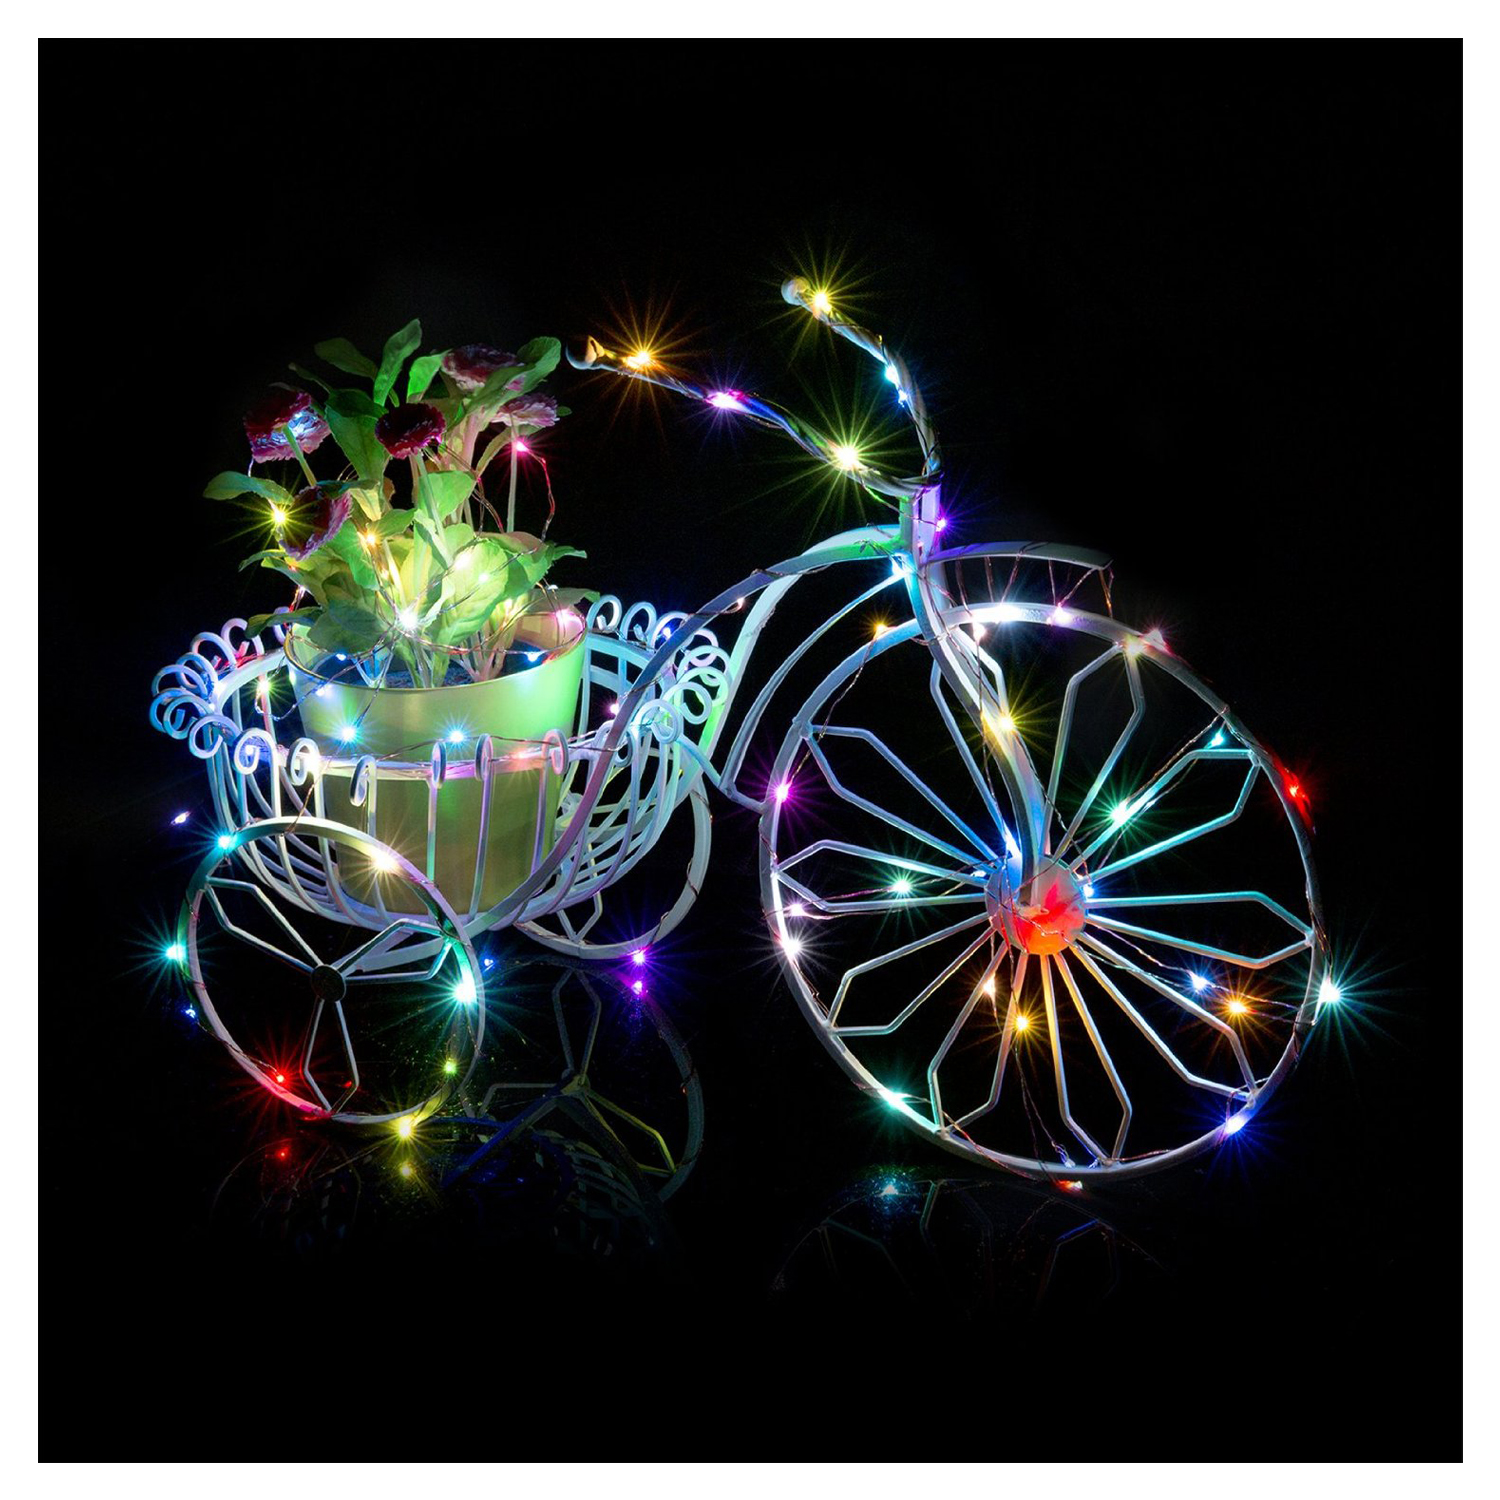 LED String Light Copper Wire Bedroom LED Fairy Starry Lights for Garden Path Christmas Tree Decora(20 LEDs, Colorful, 7FT)